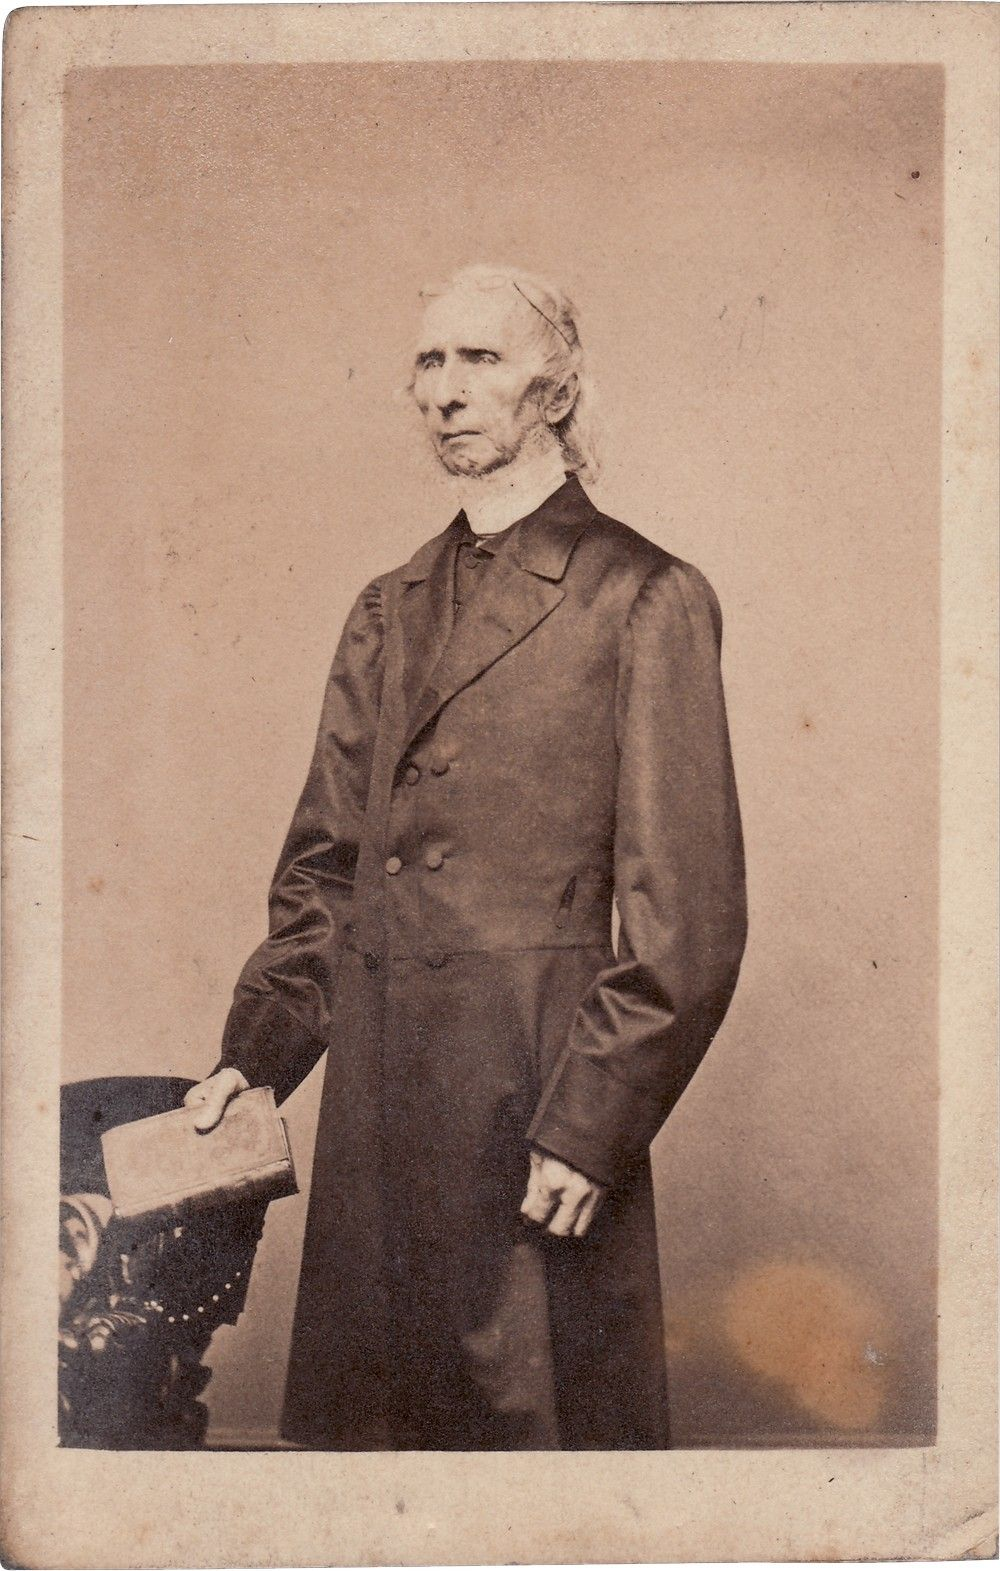 Carte-de-Visite of Abolitionist Crusader Rabbi David Einhorn